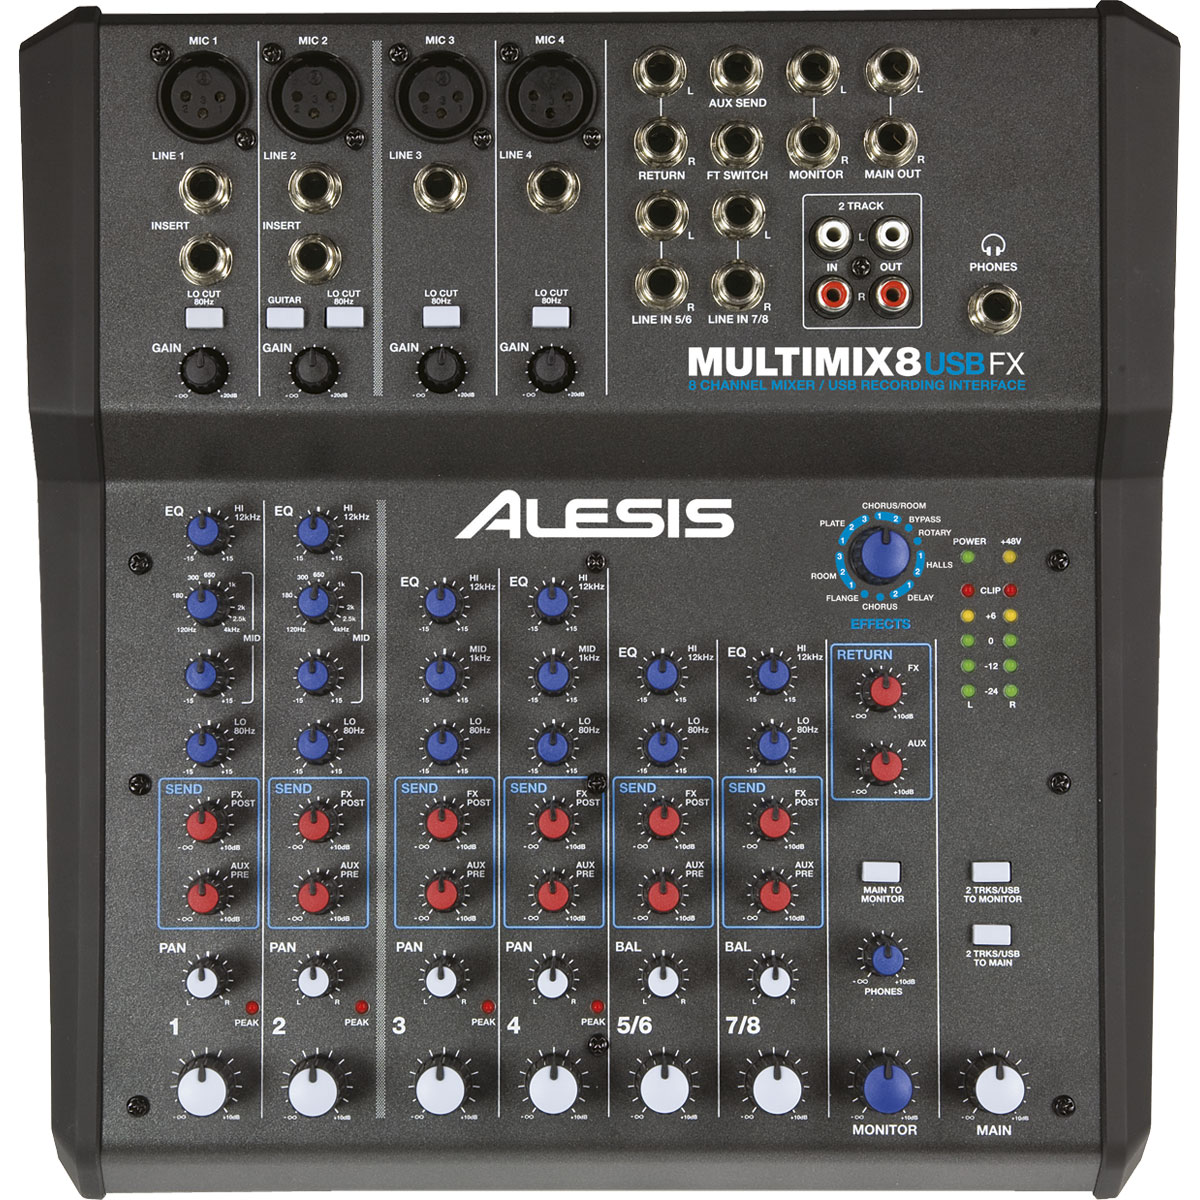 Alesis multimix 8 usb fx table de mixage alesis sur for Table de mixage xpress 6 keywood